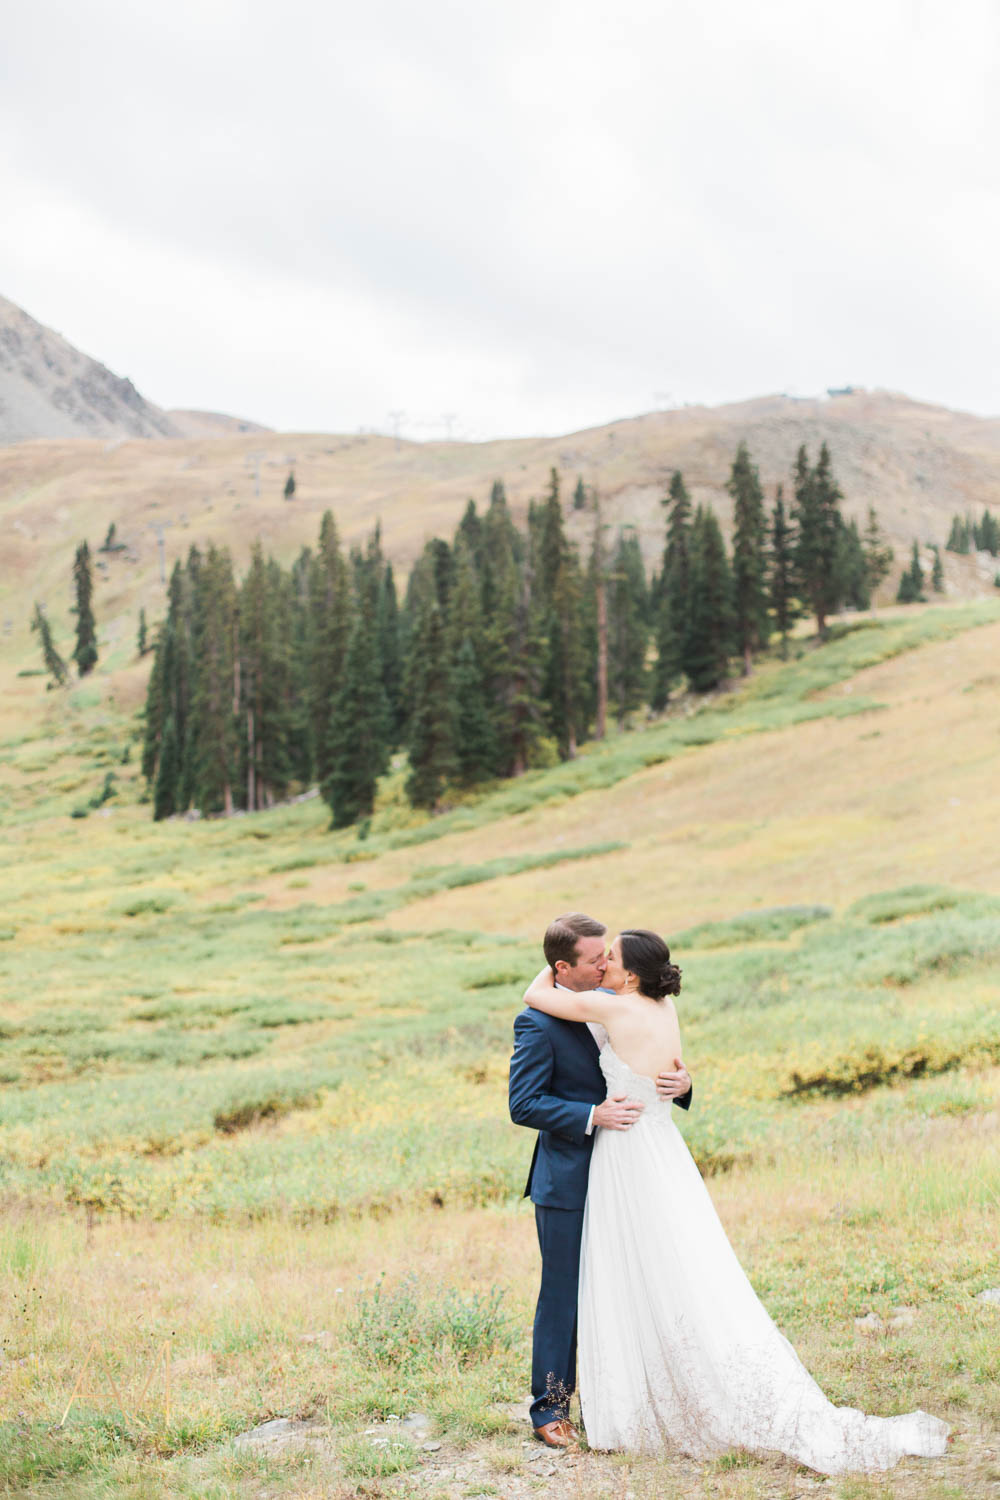 AshleighMillerPhotography-FirstLook-Colorado-Weddings-1541.jpg